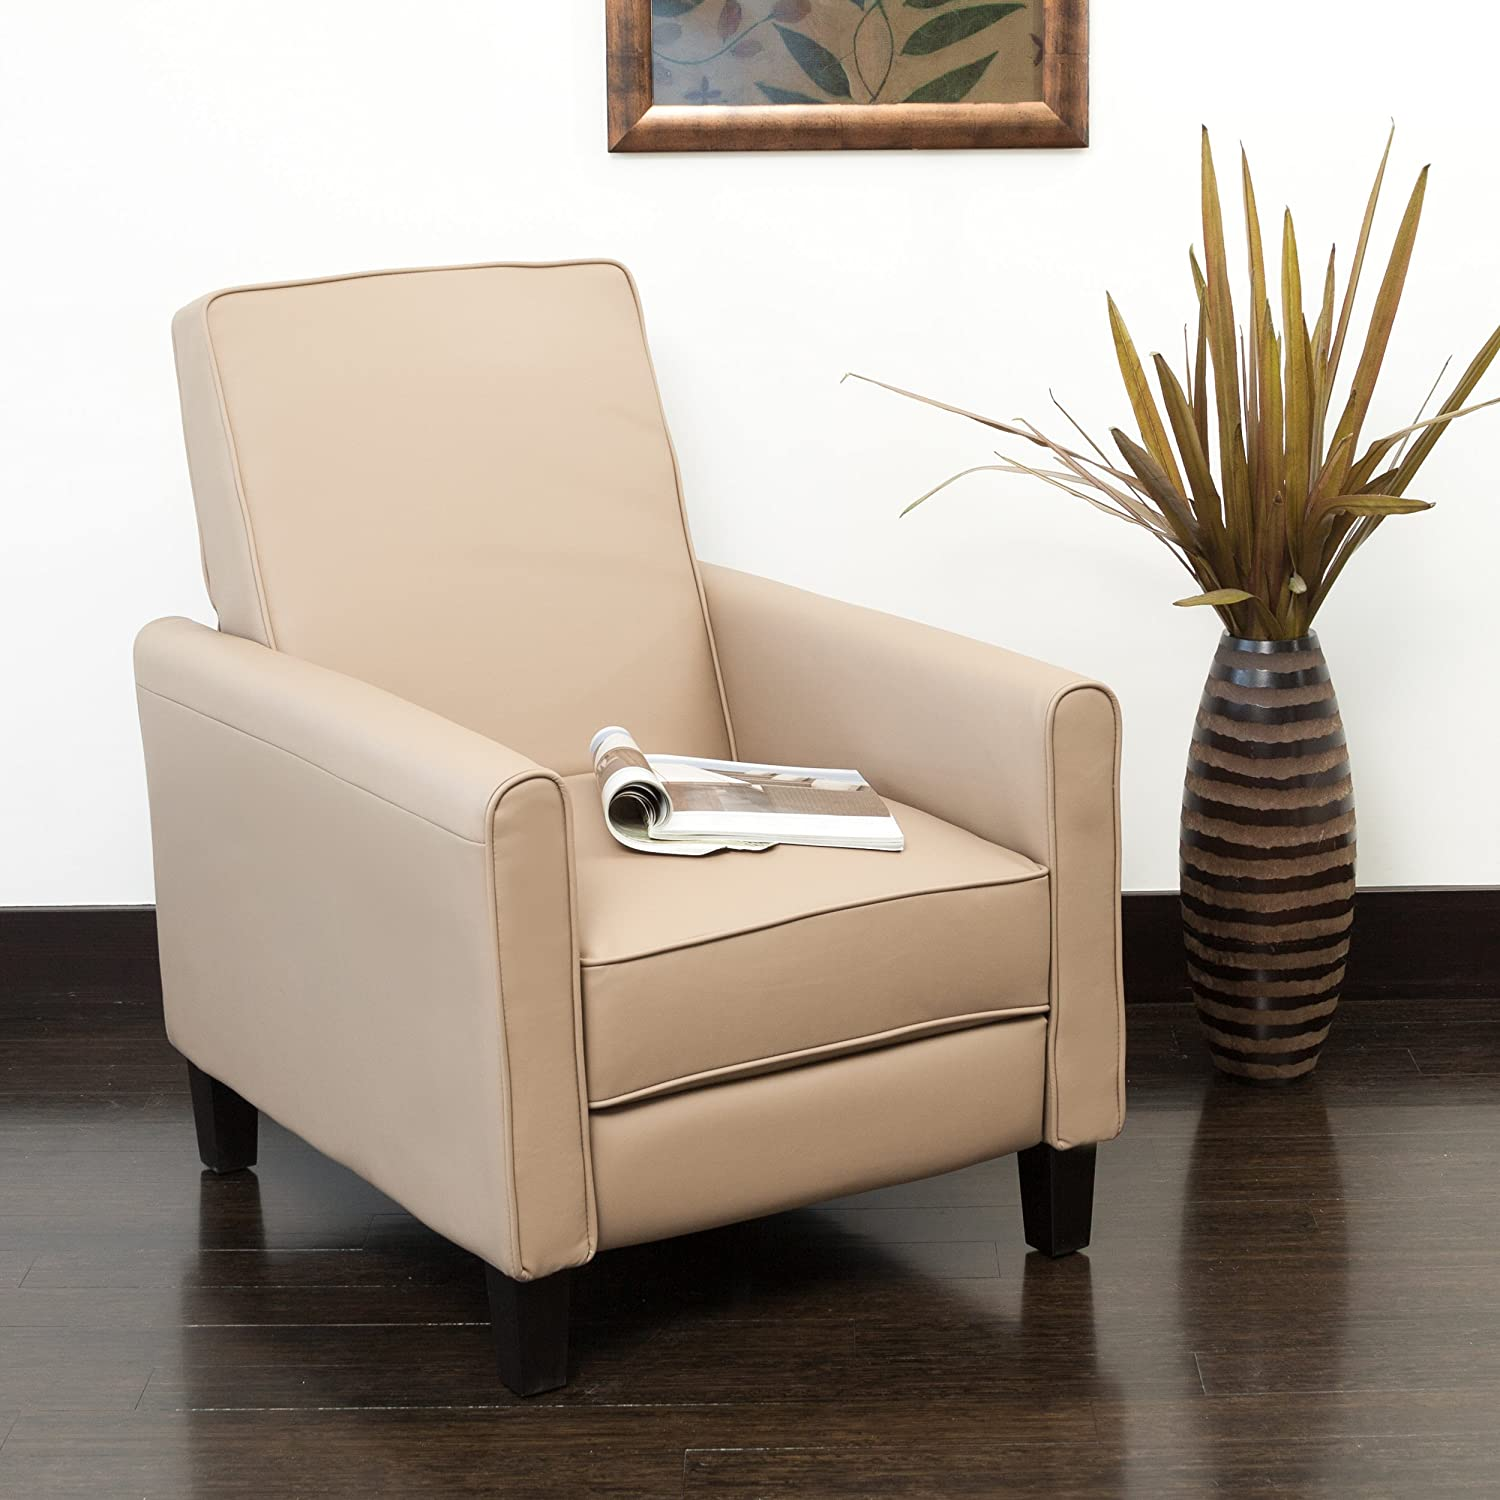 Christopher Knight Home reading chair for bedroom